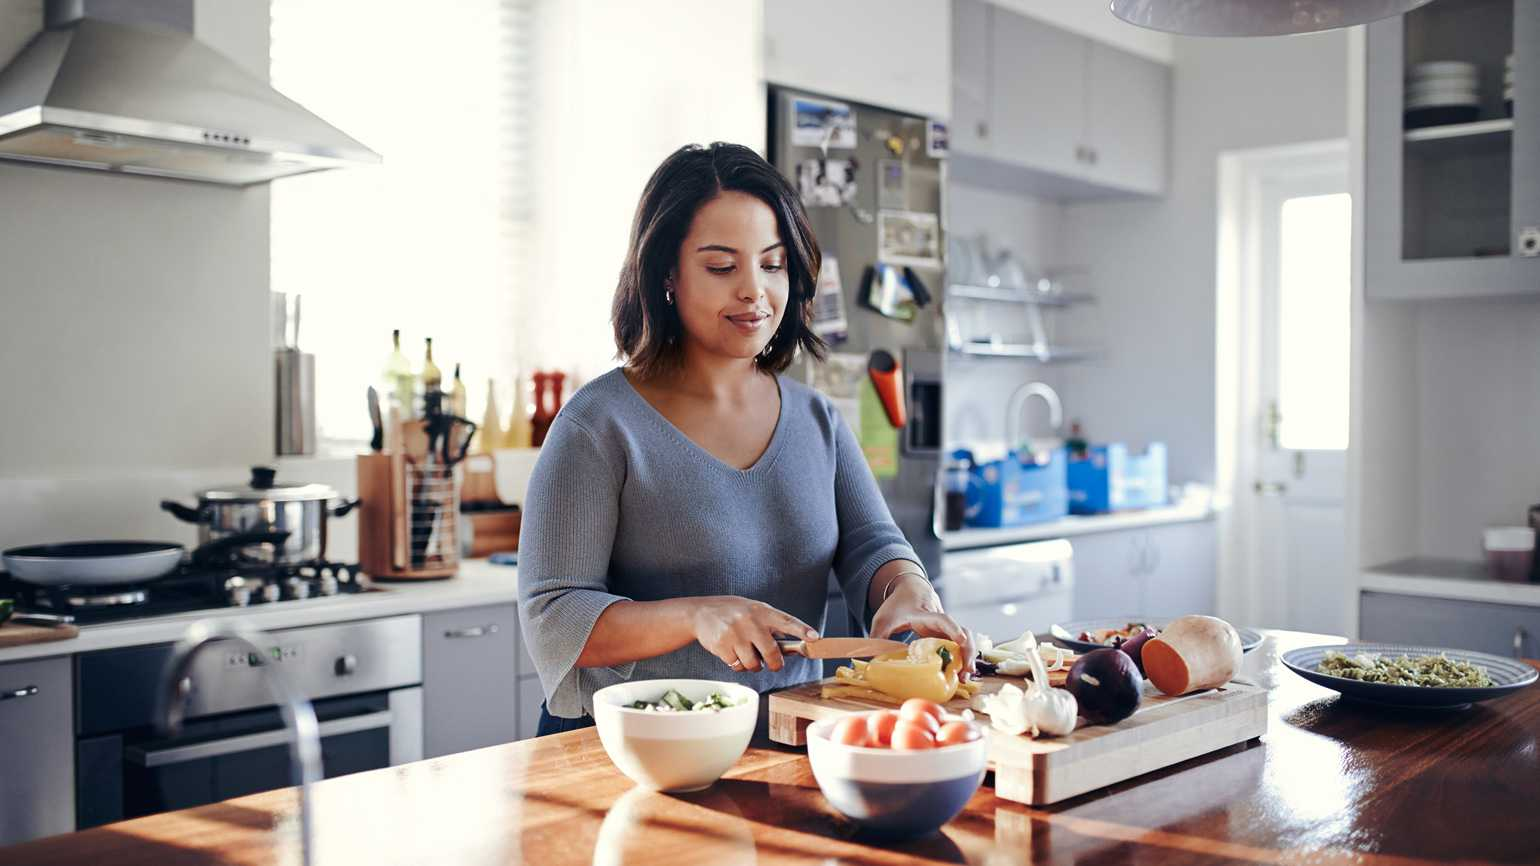 A young mother chopping vegetables to eat healthier.